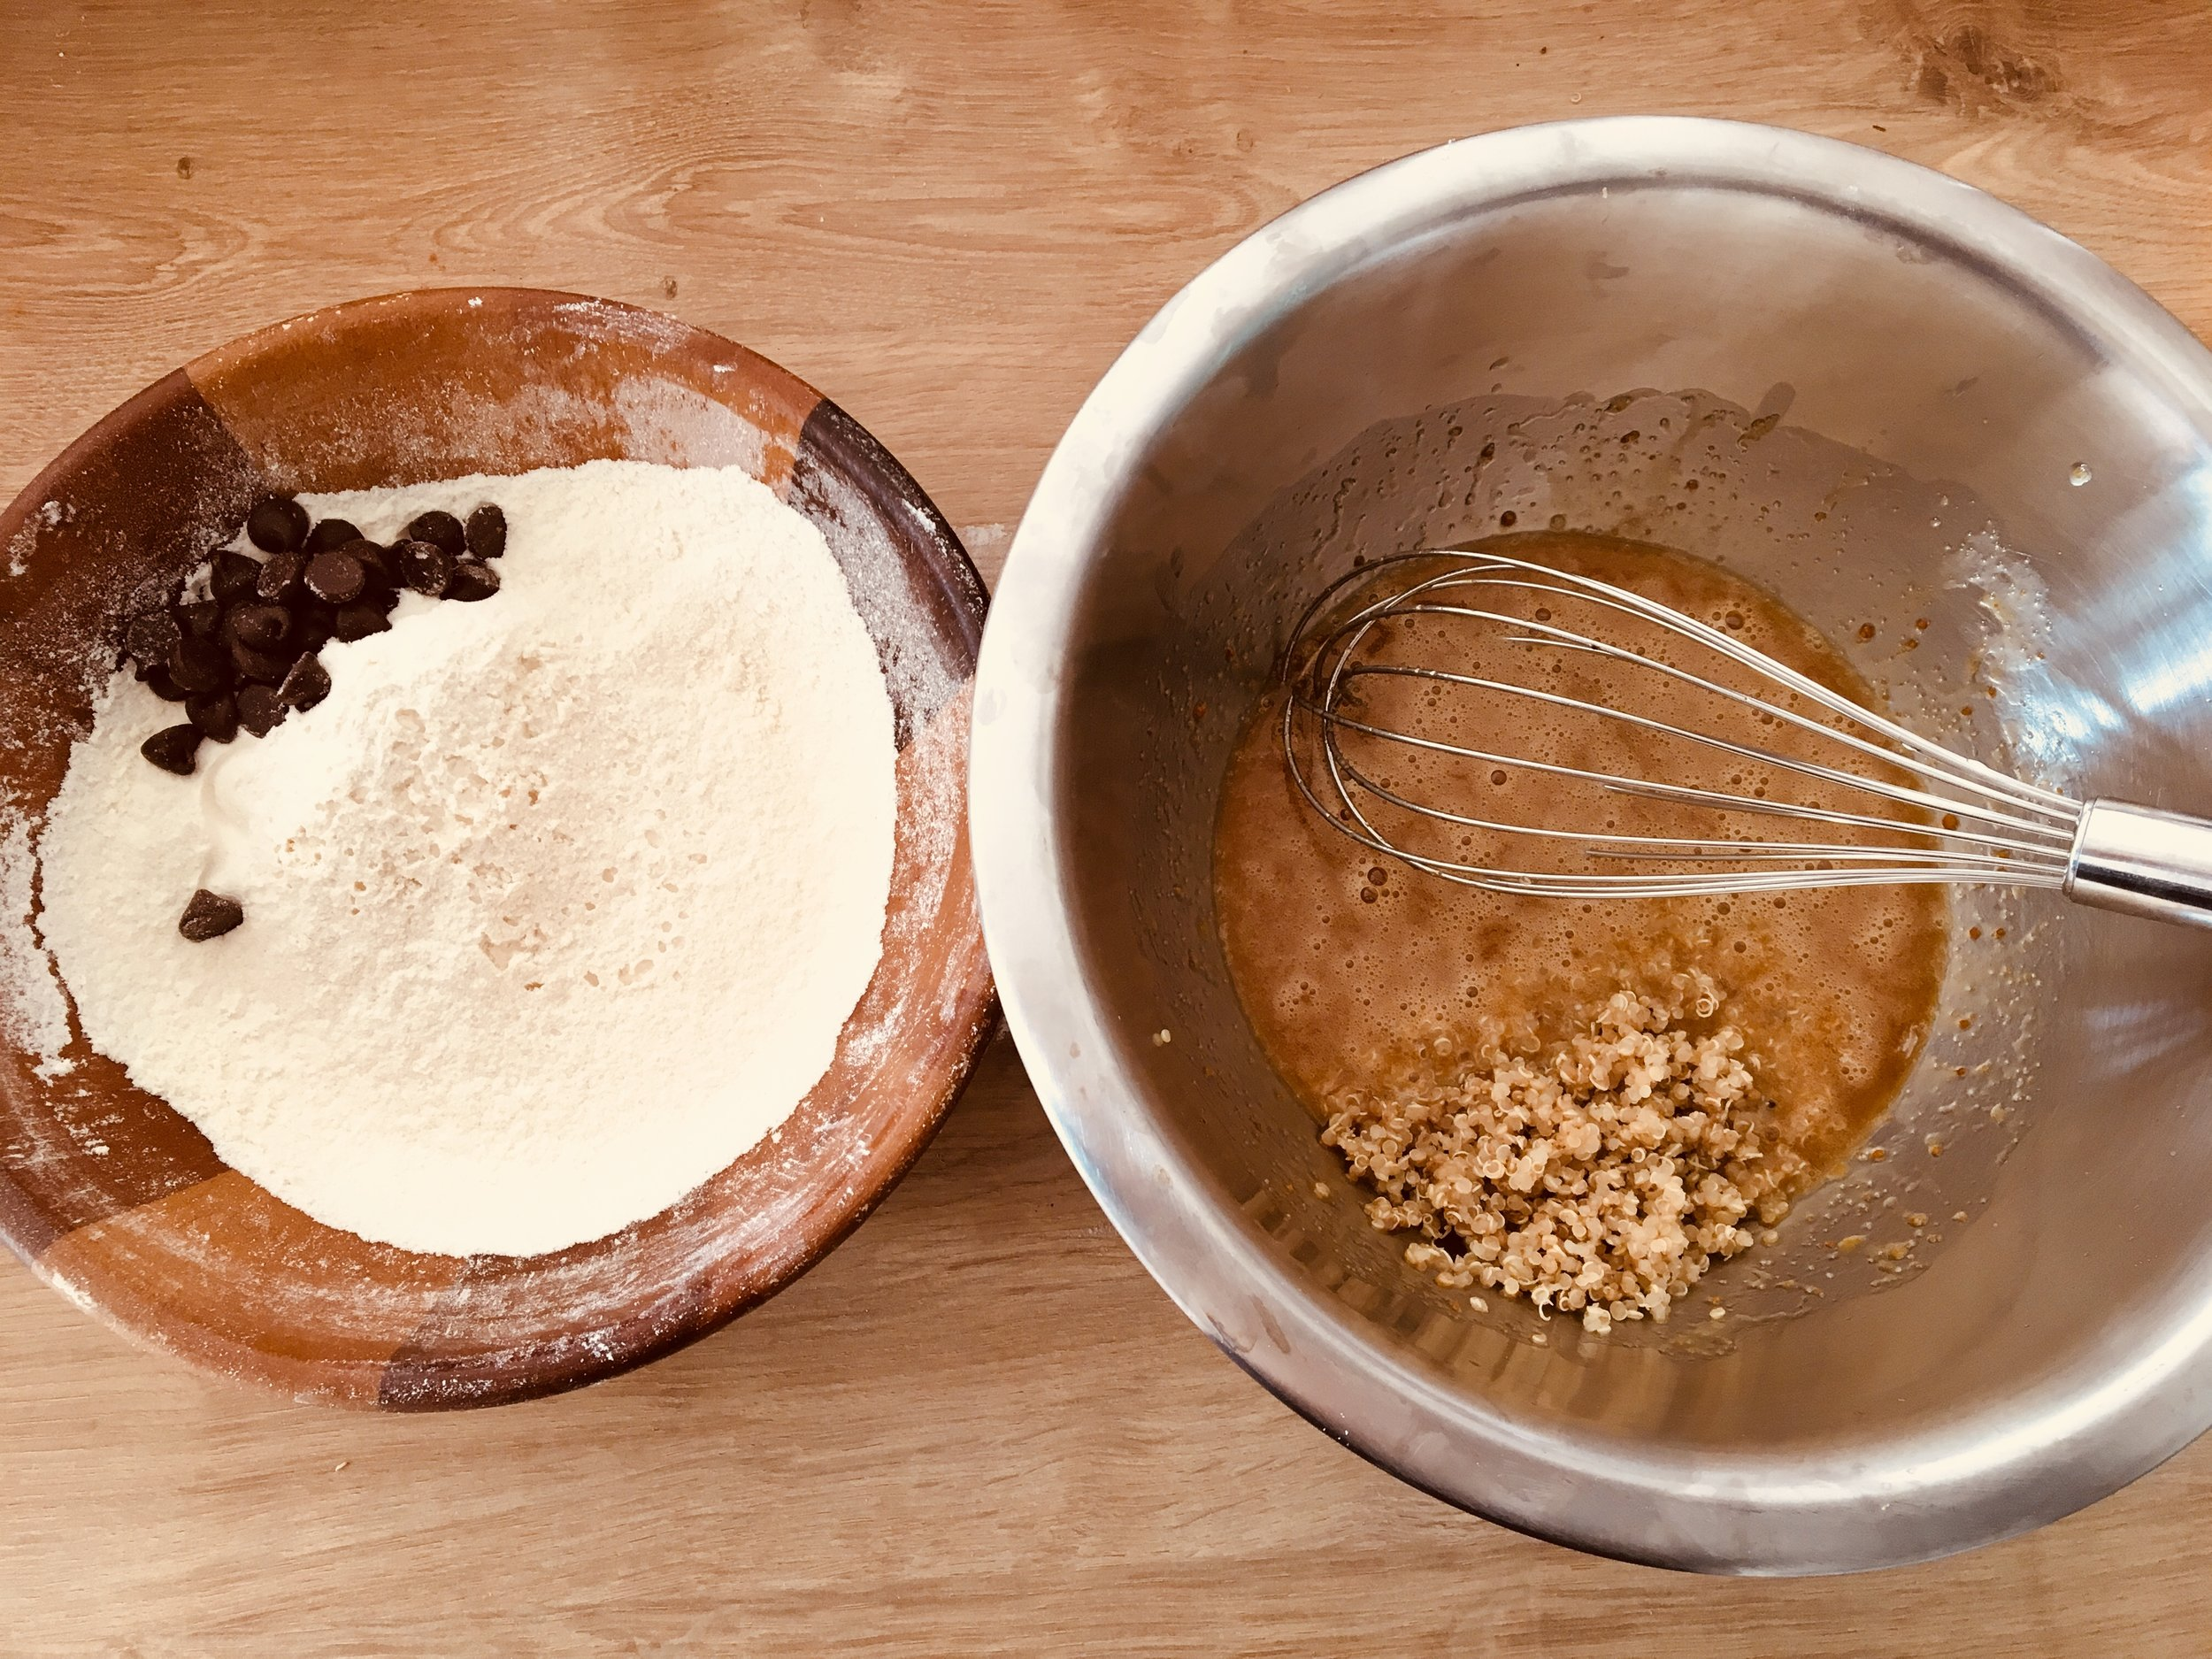 1. Preheat the oven to 170°C fan on.  2. Mix the melted (but warm) butter and sugars.  3. Add the egg yolk, quinoa and salt. Mix.  4. Add the sifted flour. Mixing  5. Chop the chocolate and stir in.  6. Put in the fridge for 30 minutes.